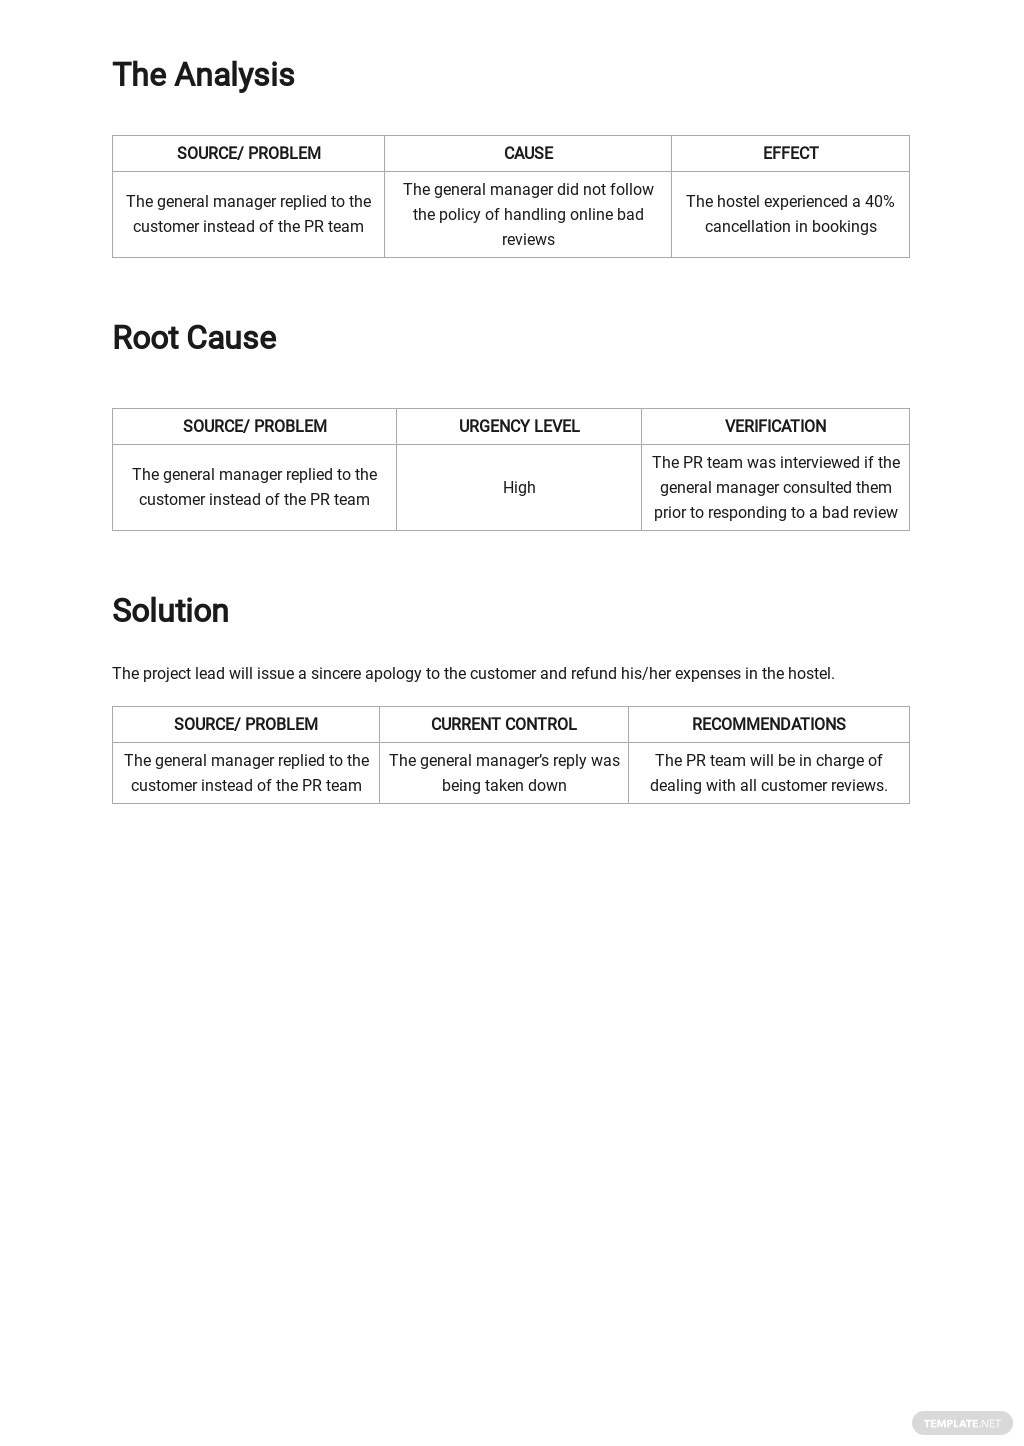 FREE Blank Root Cause Analysis Template - Google Docs, Word